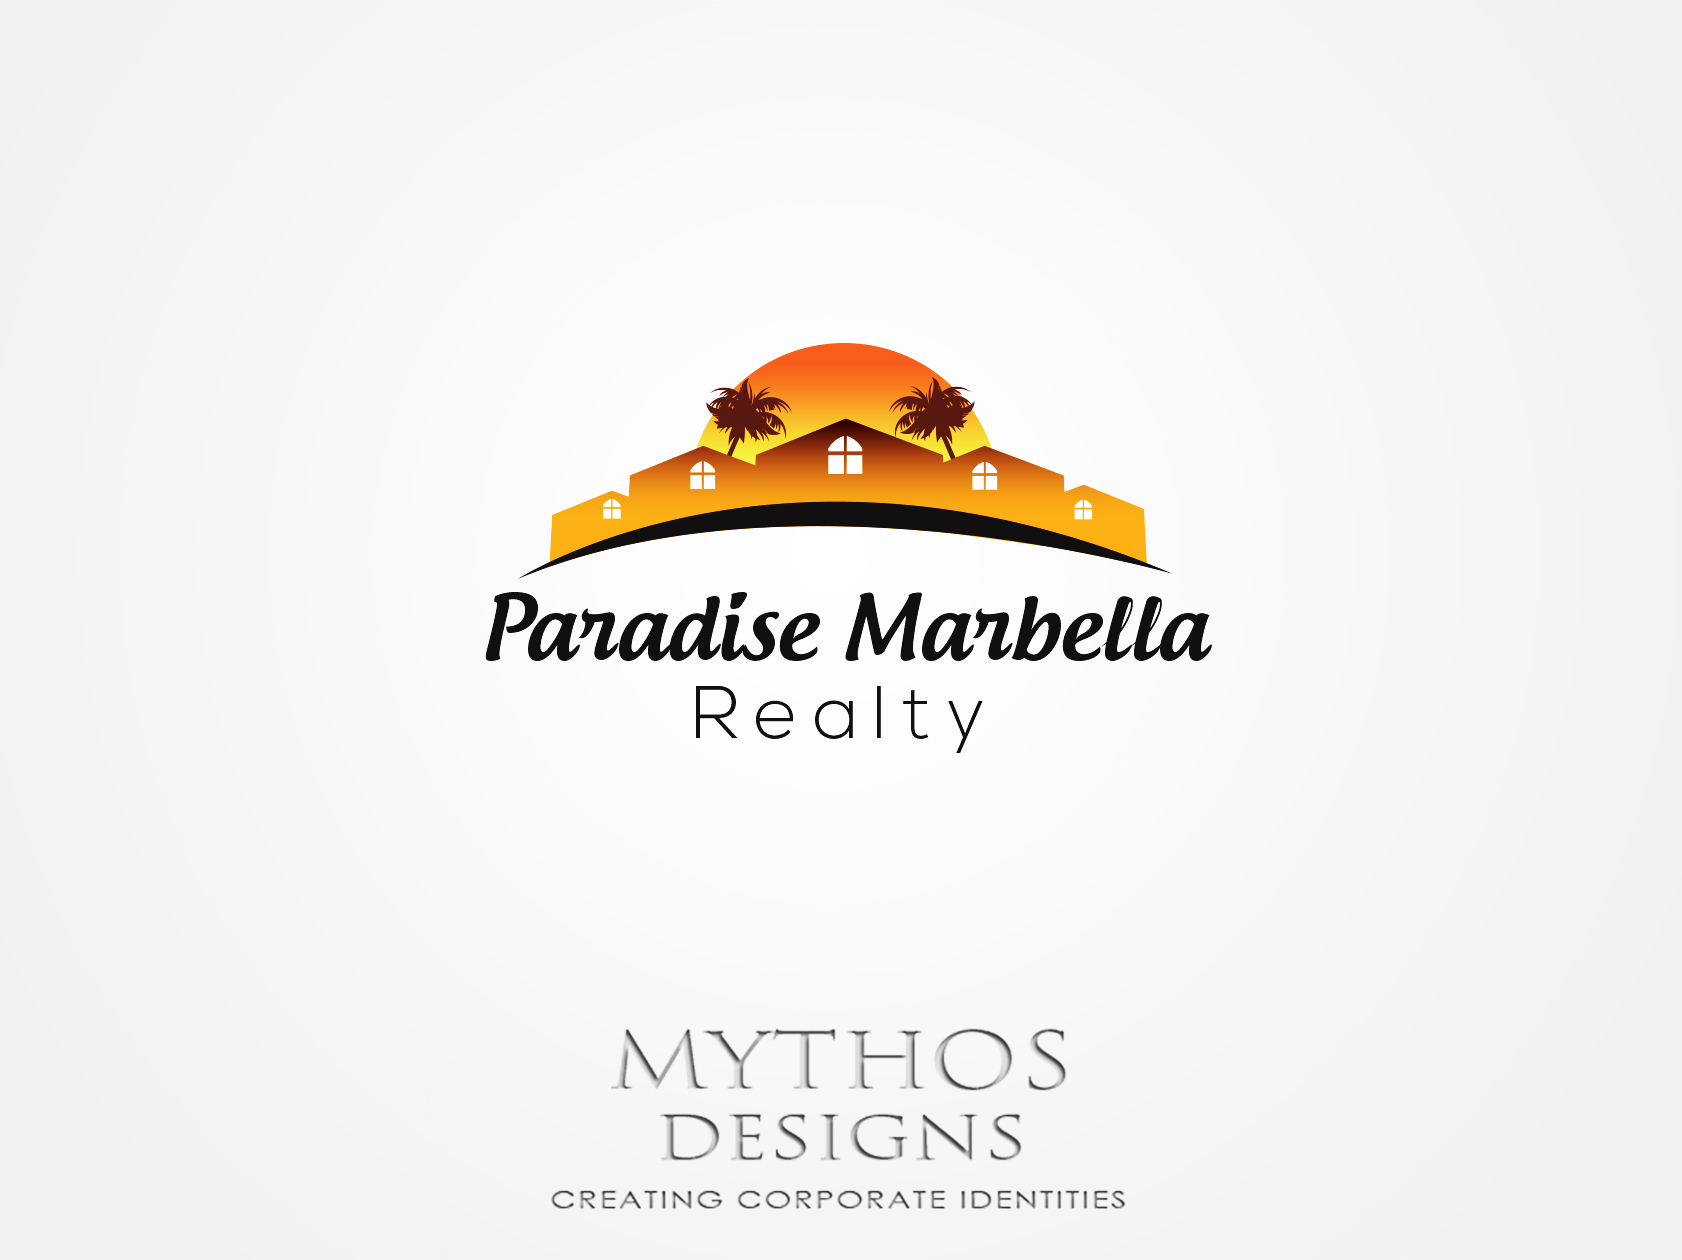 Logo Design by Mythos Designs - Entry No. 45 in the Logo Design Contest Captivating Logo Design for Paradise Marbella Realty.